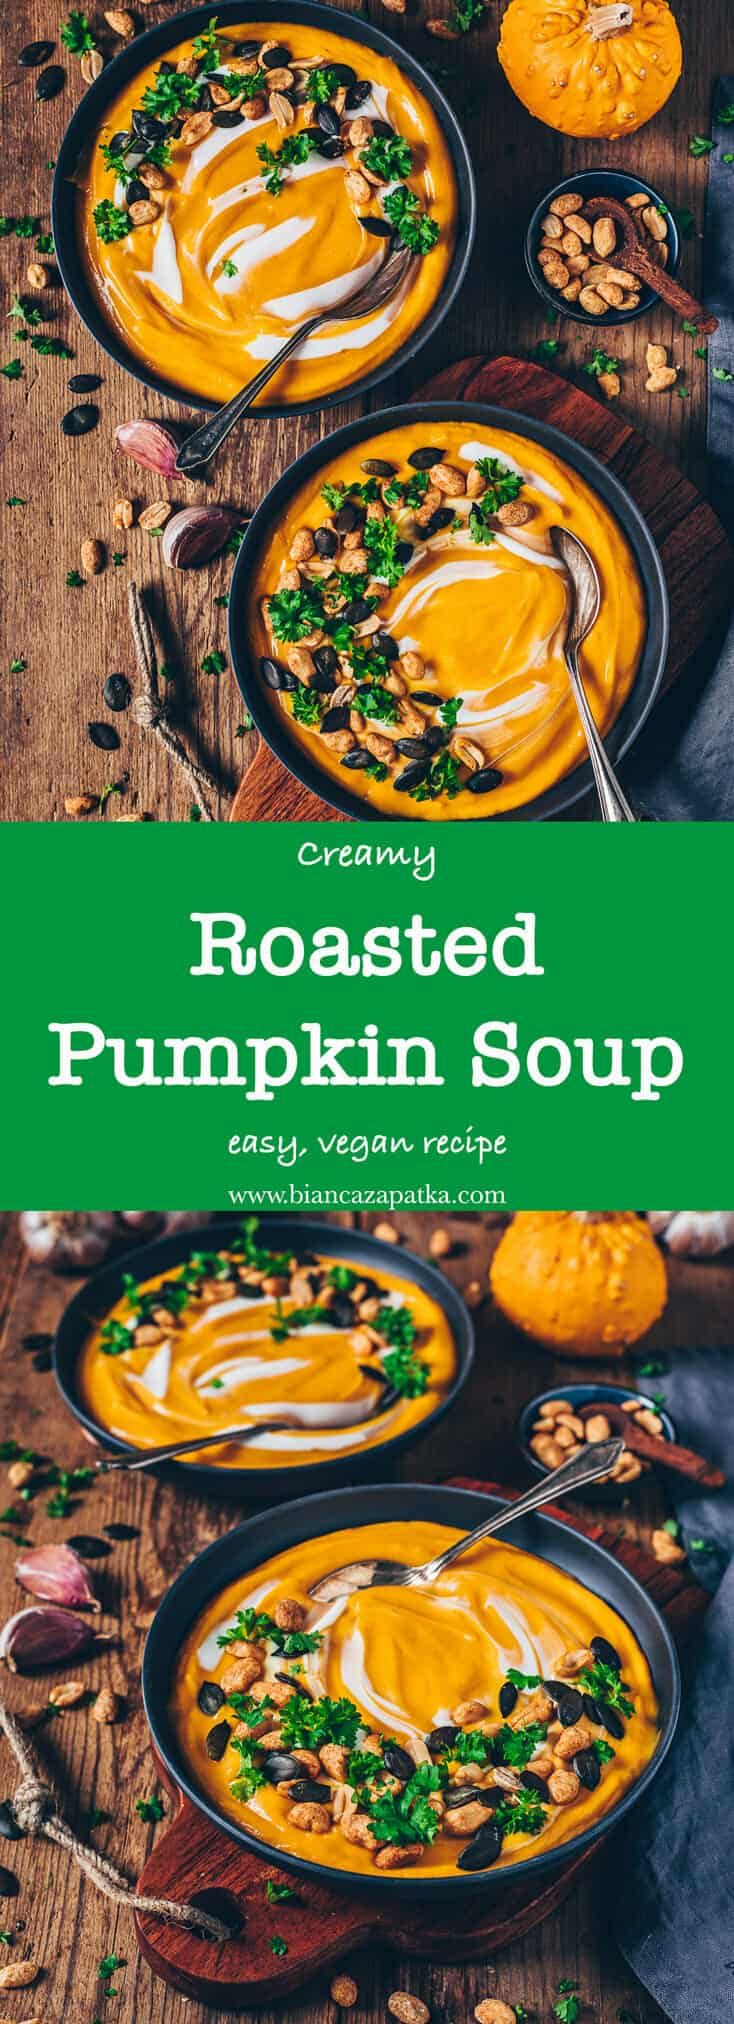 This vegan roasted pumpkin soup is super creamy, delicious and healthy! It's very easy to make, full of pumpkin flavors and the best way to warm up!